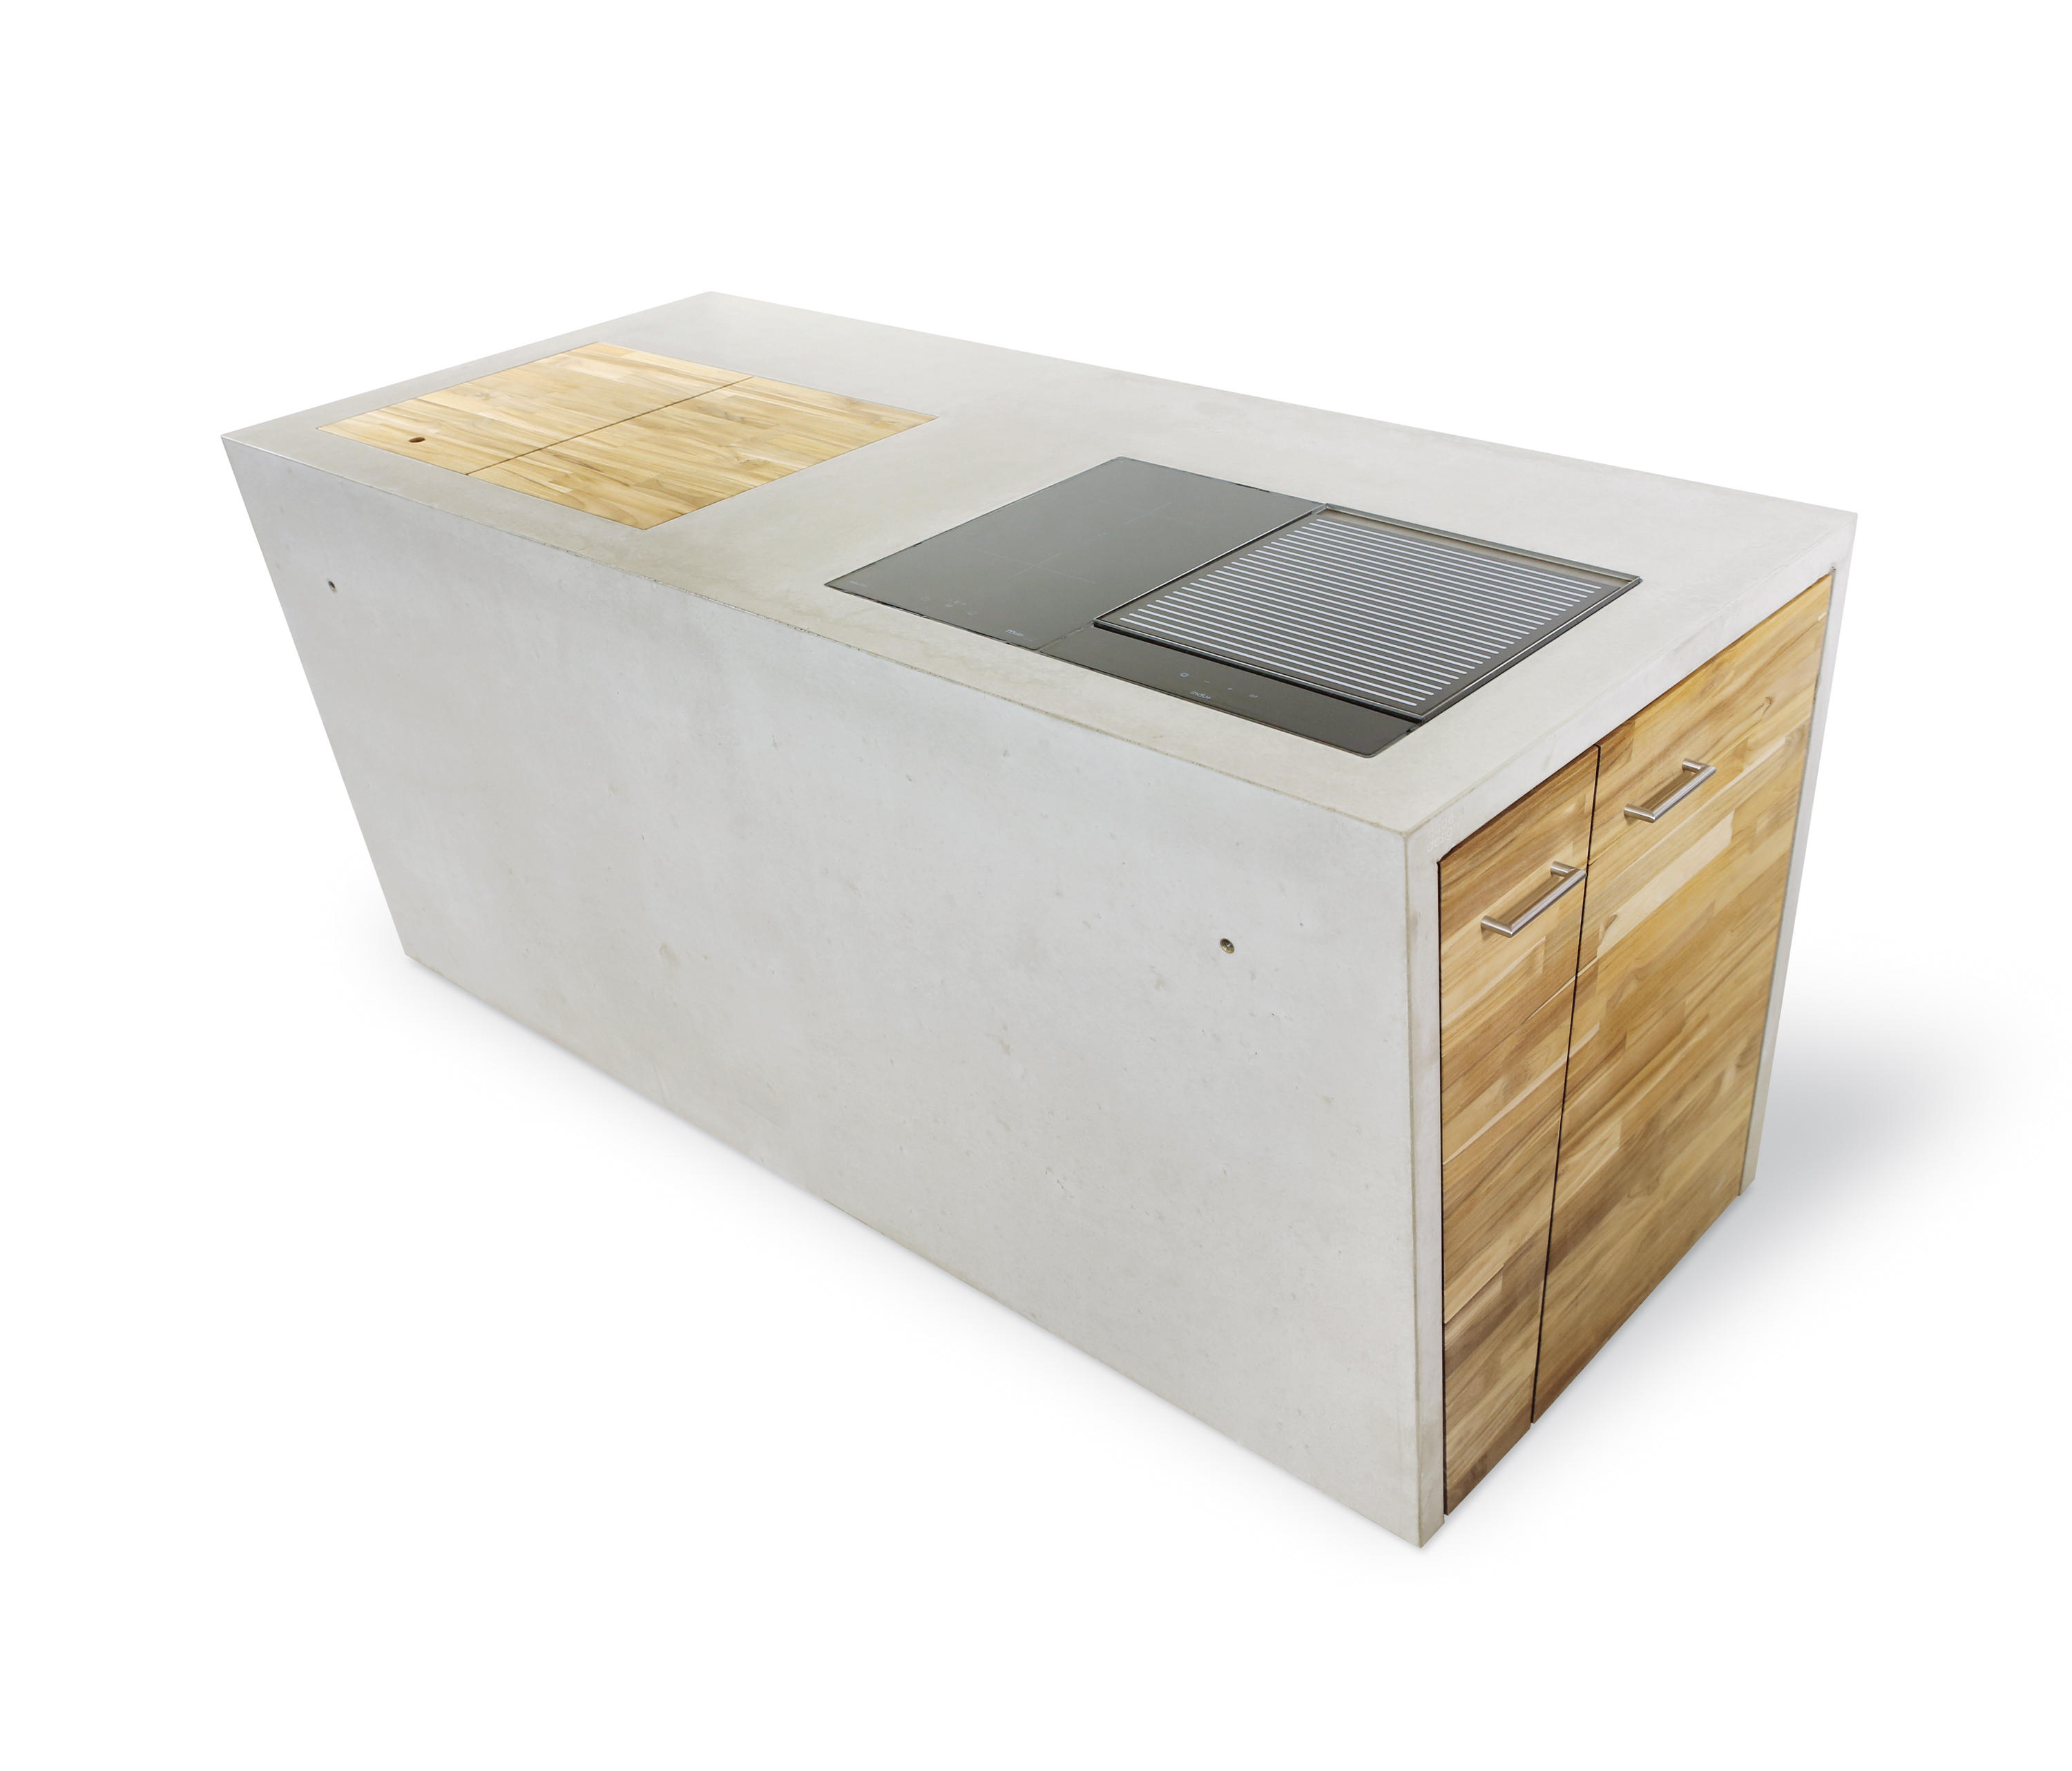 THE CONCRETE | OUTDOOR KITCHEN - Modular kitchens from Dade Design ...